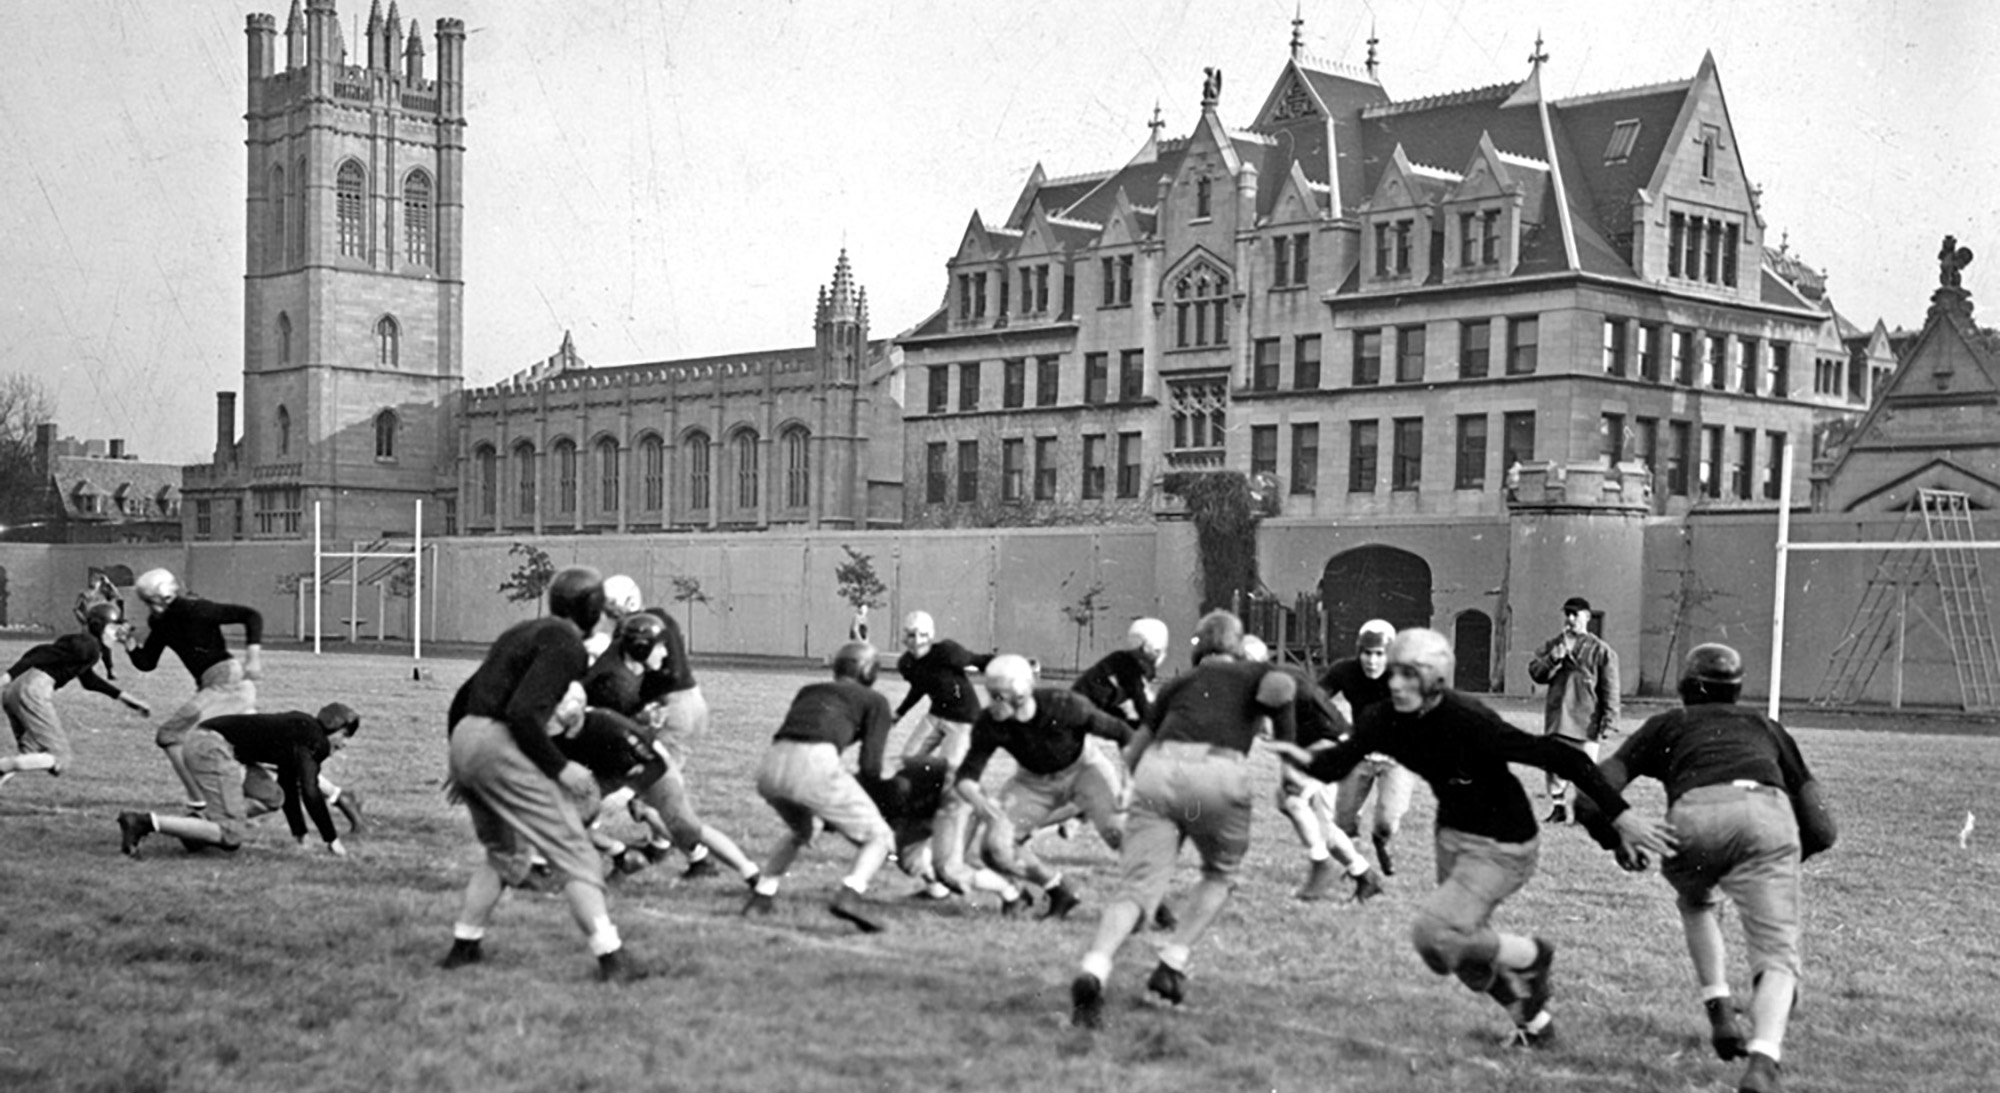 1947 Intramural football game at the University of Chicago